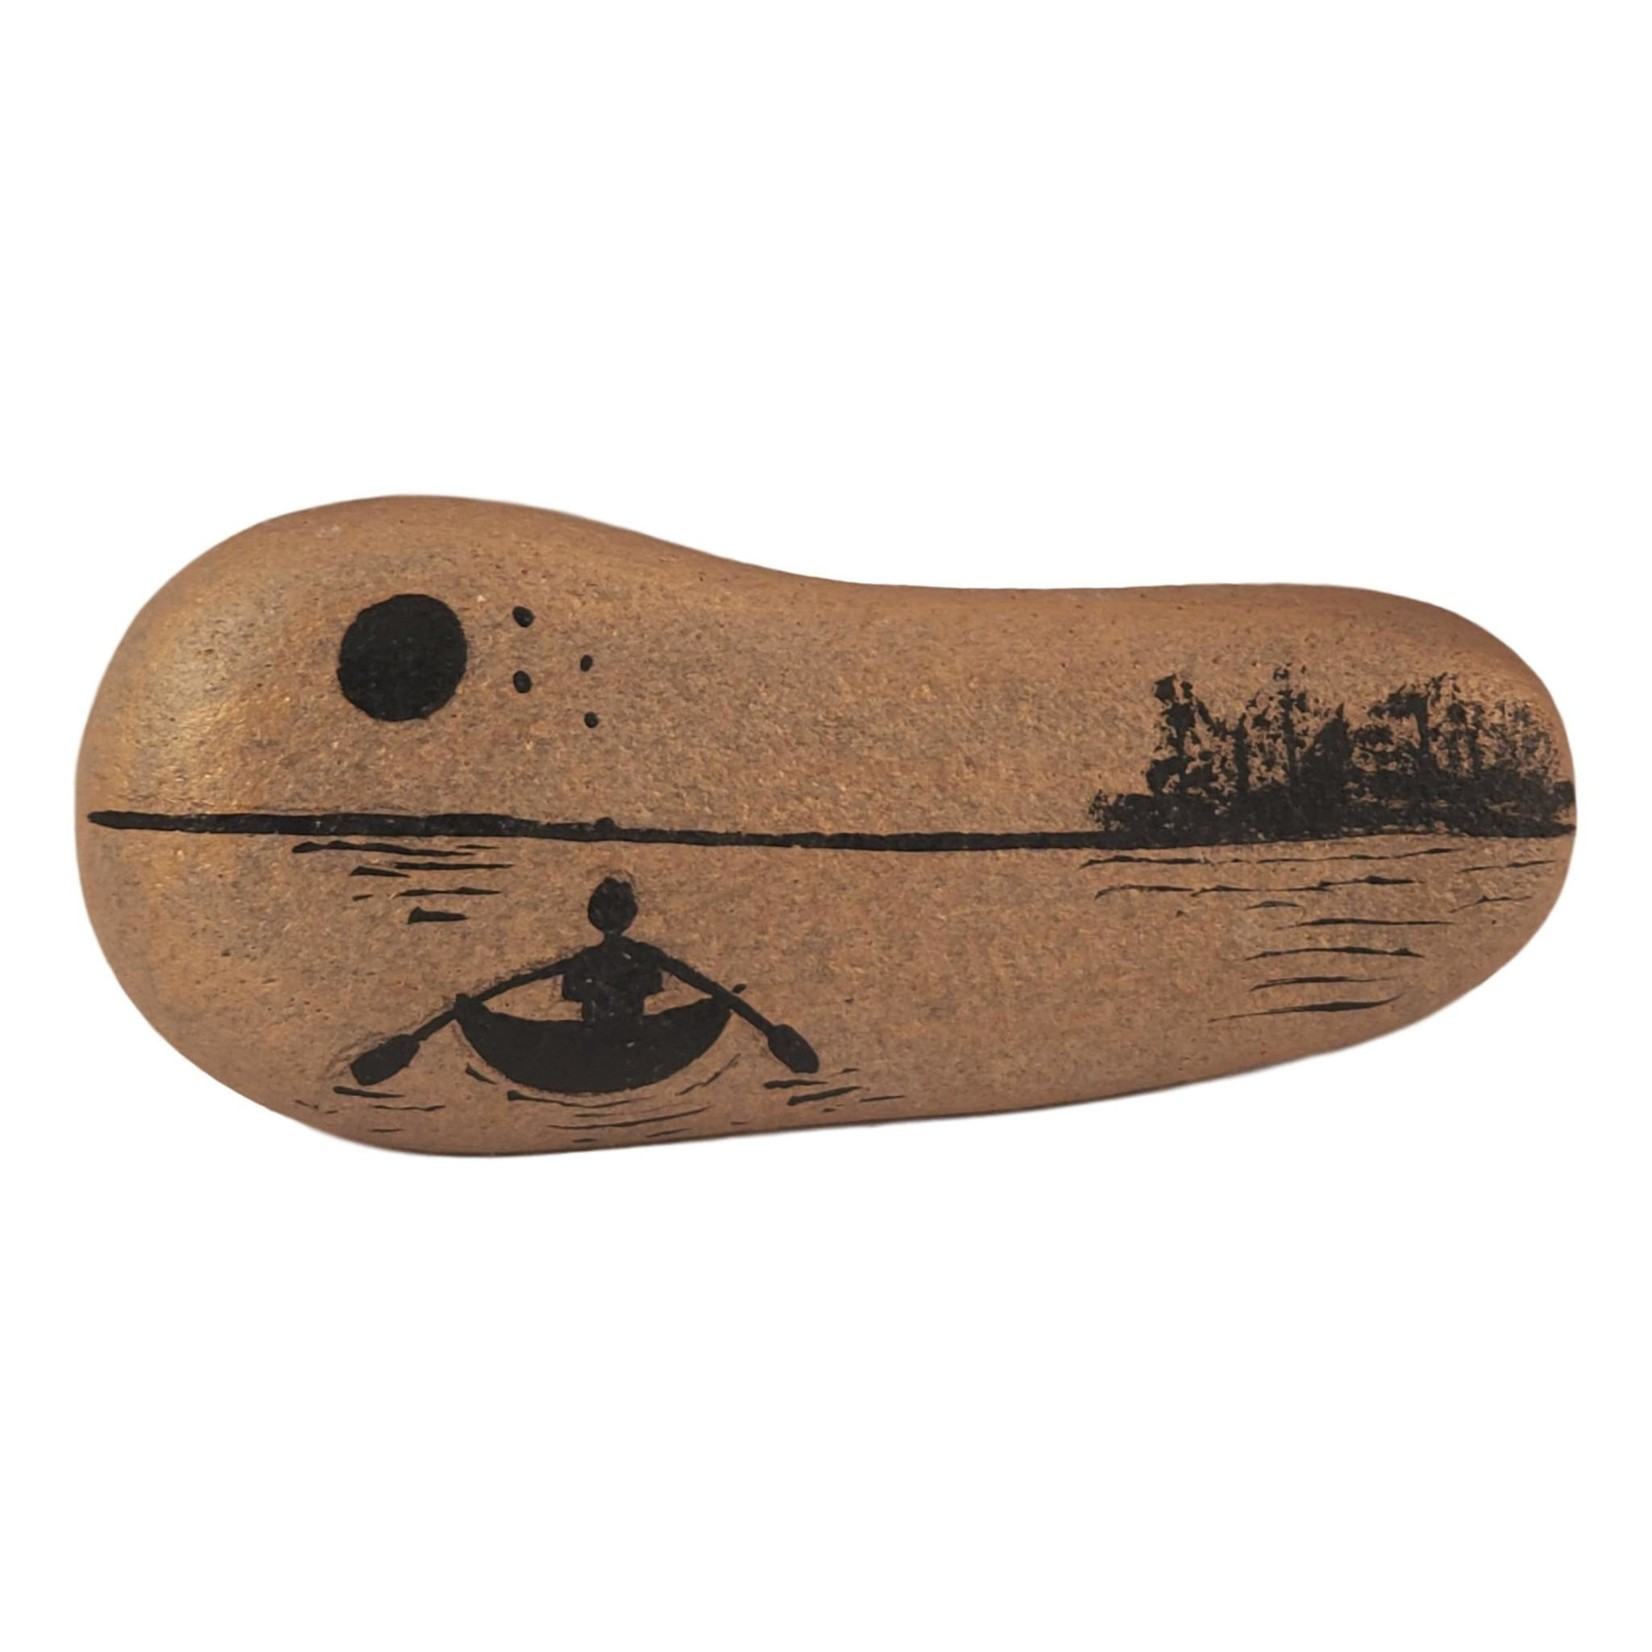 Off The Wall Gallery Gold Rock with Kayak Scenery Handpainted